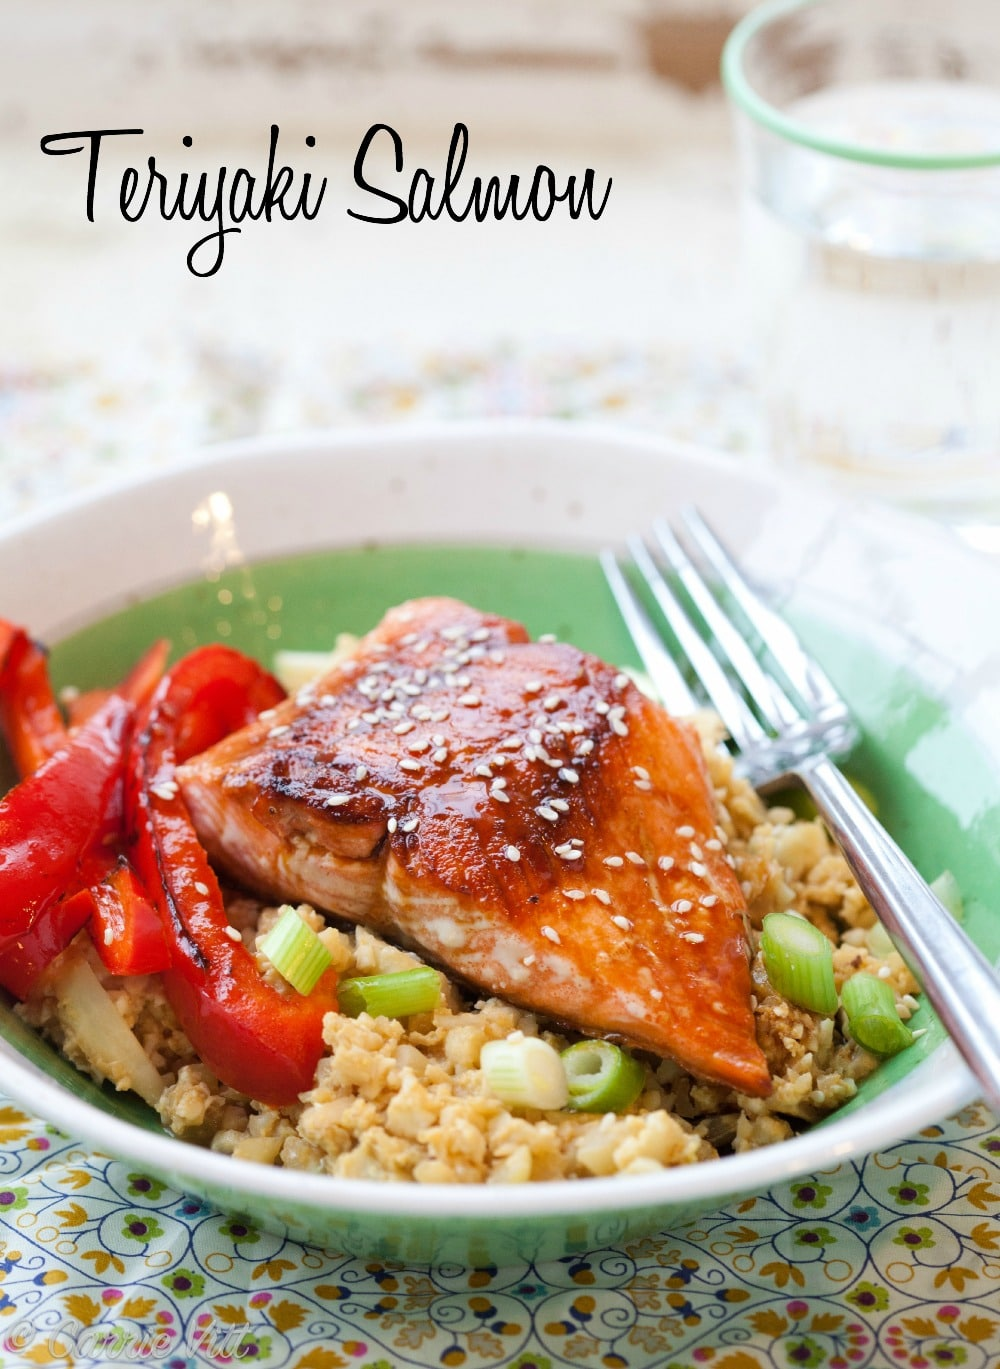 favor salmon recipes because they're quick to prepare and salmon ...